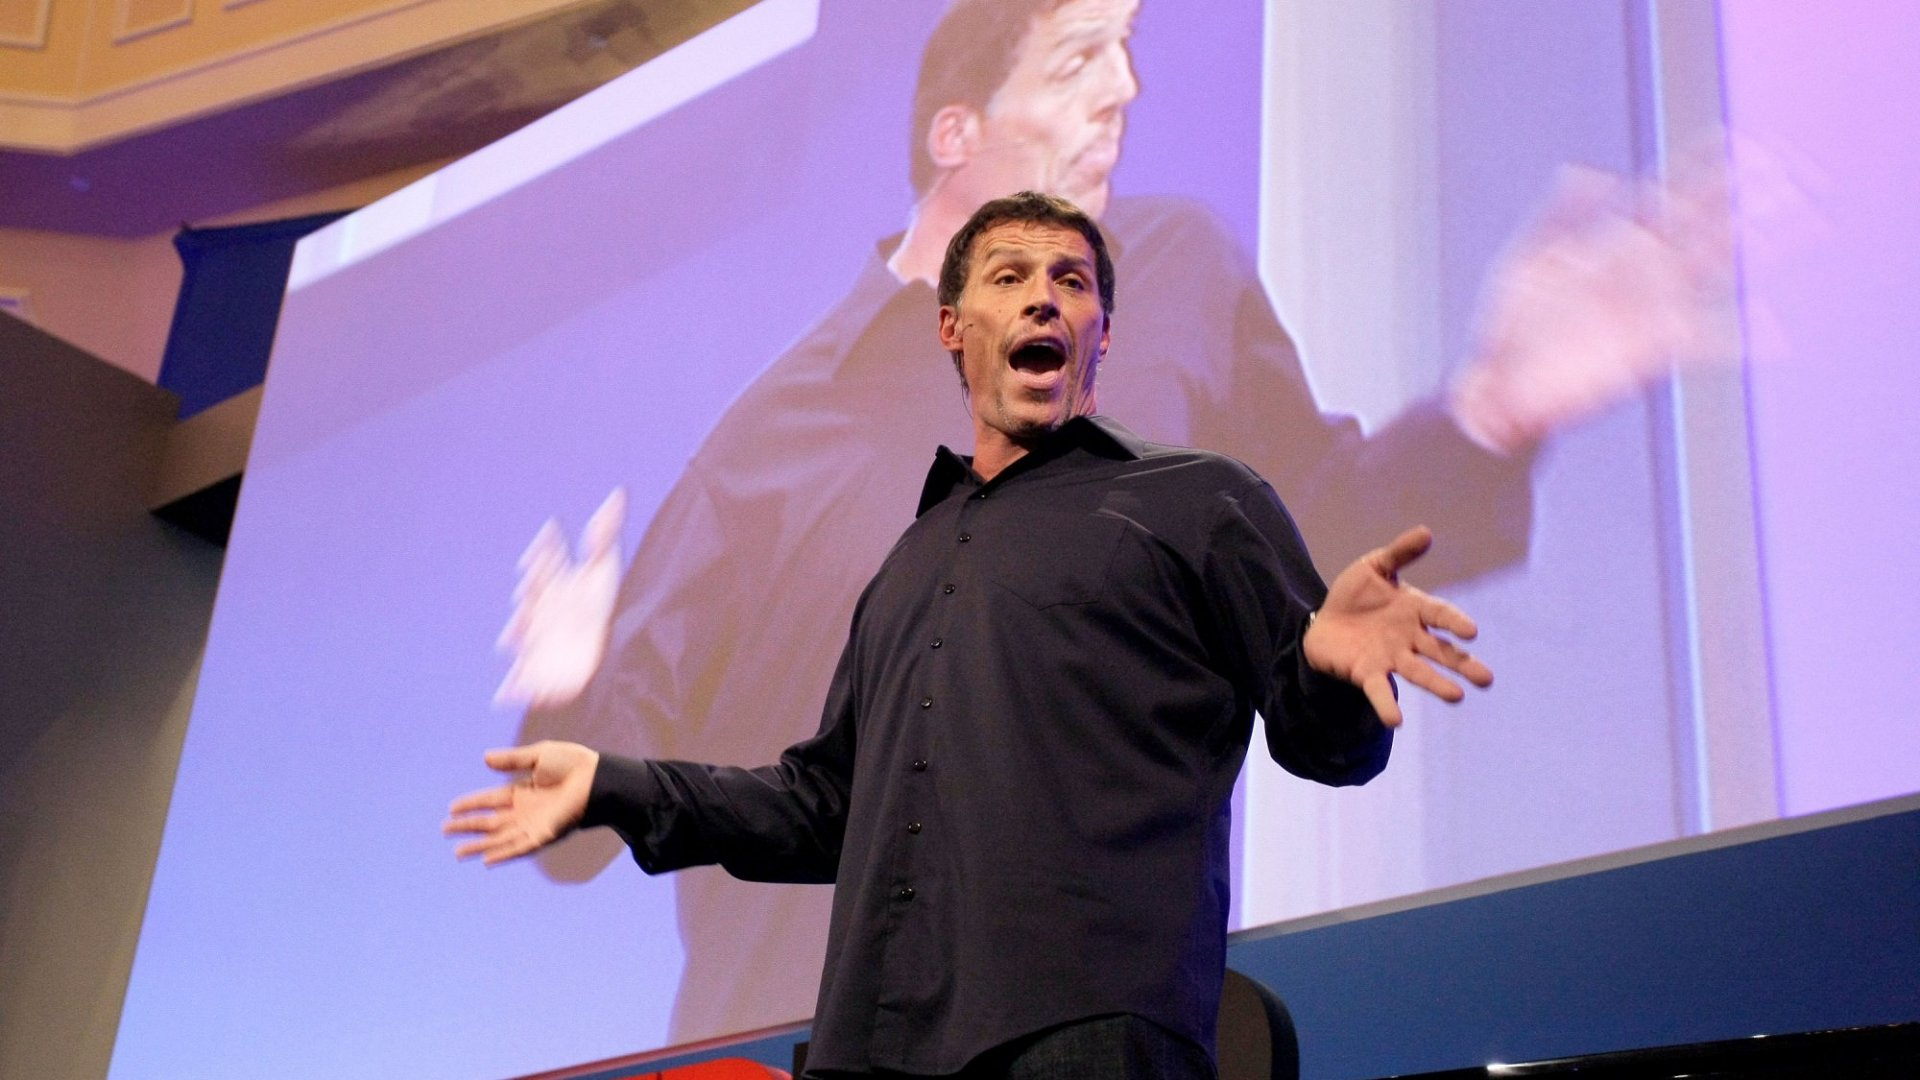 Need a Shot of Inspiration? Here are 5 Awesome TED Talks for Entrepreneurs